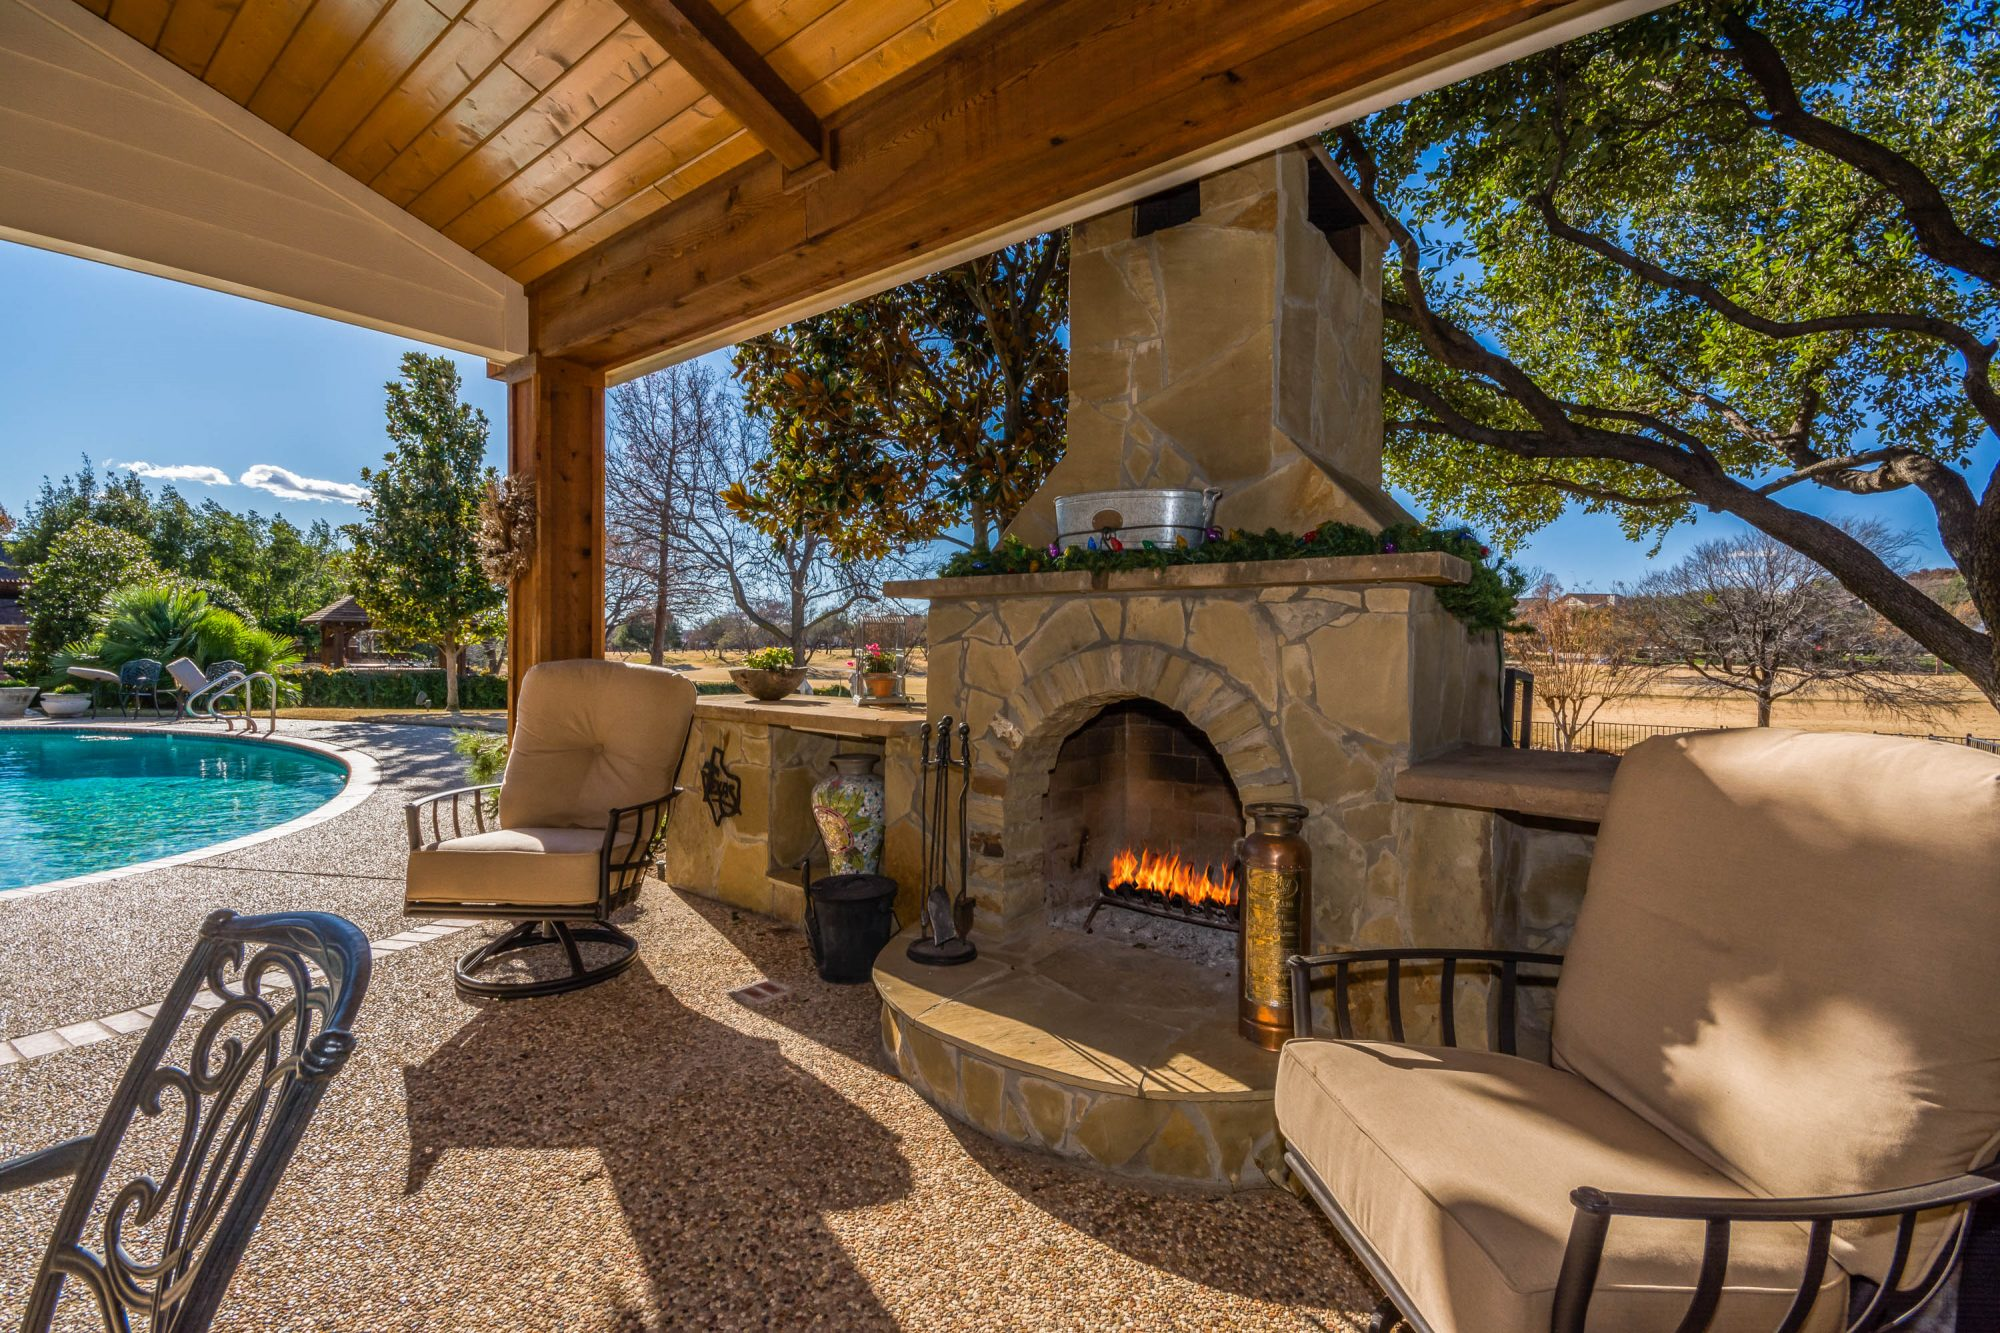 Create the perect patio in Dallas with an outdoor fireplace and comfy patio furniture. To start designing your outdoor fireplace, contact Compass Outdoor Design today!